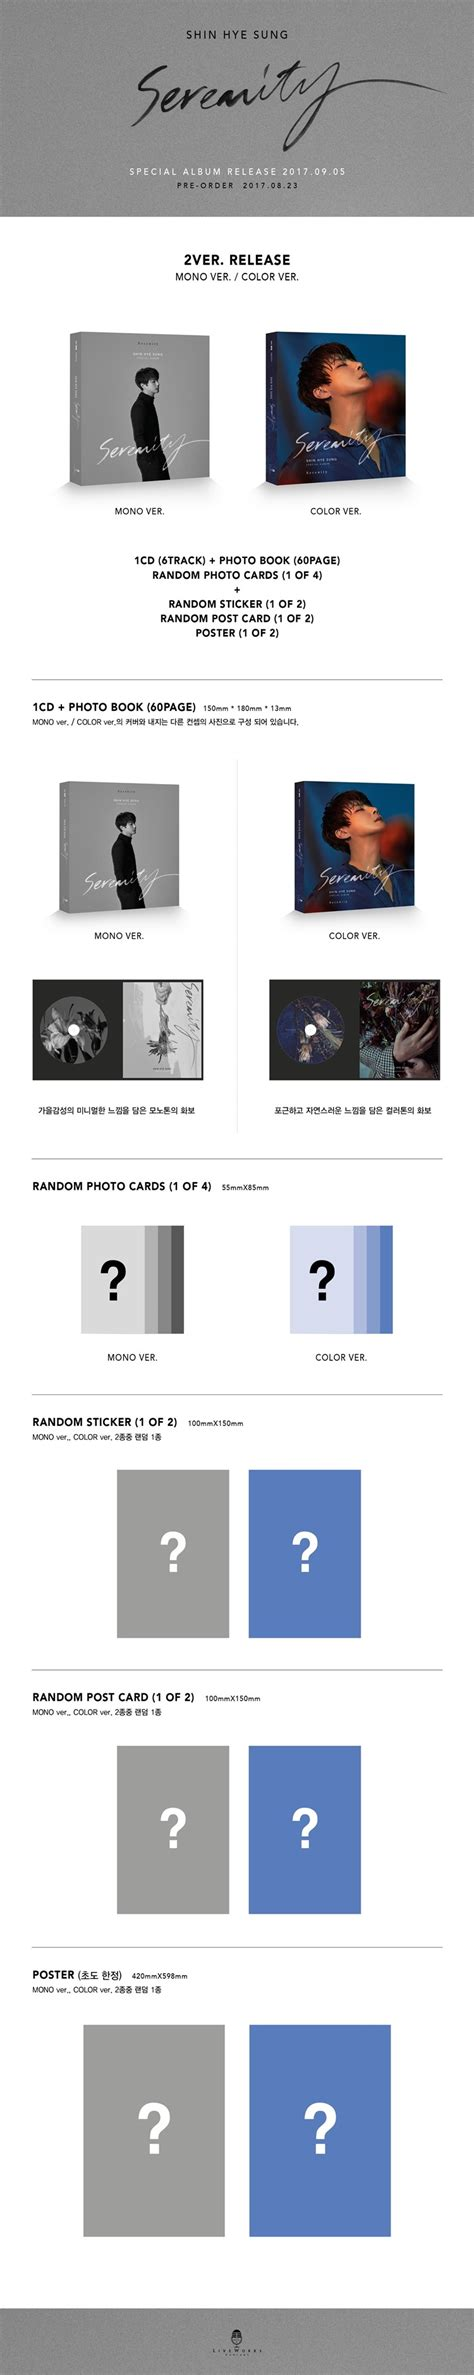 Po Shin Hye Sung Special Album Serenity Mono Color Version shin hye sung申彗星 shin hye sung serenity mono ver